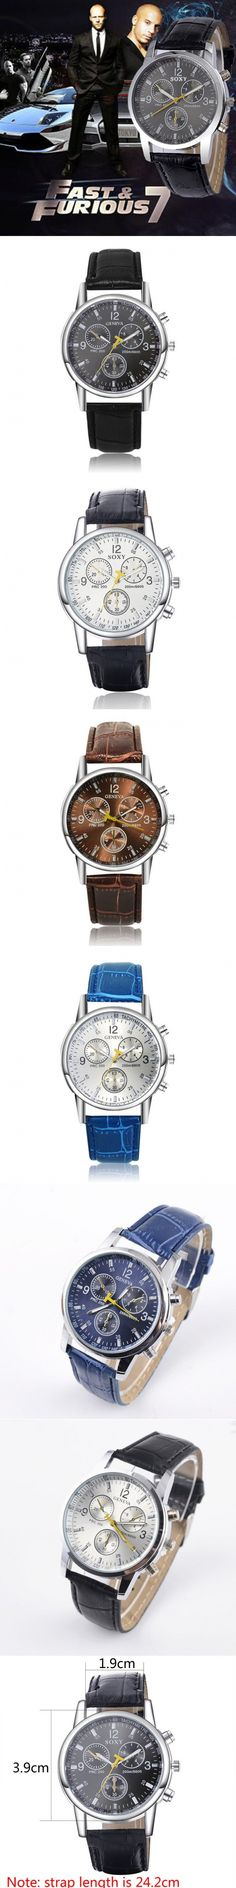 2017 New Fashion Casual Business Leather Strap Quartz Watches | Weird Deck - created via https://pinthemall.net